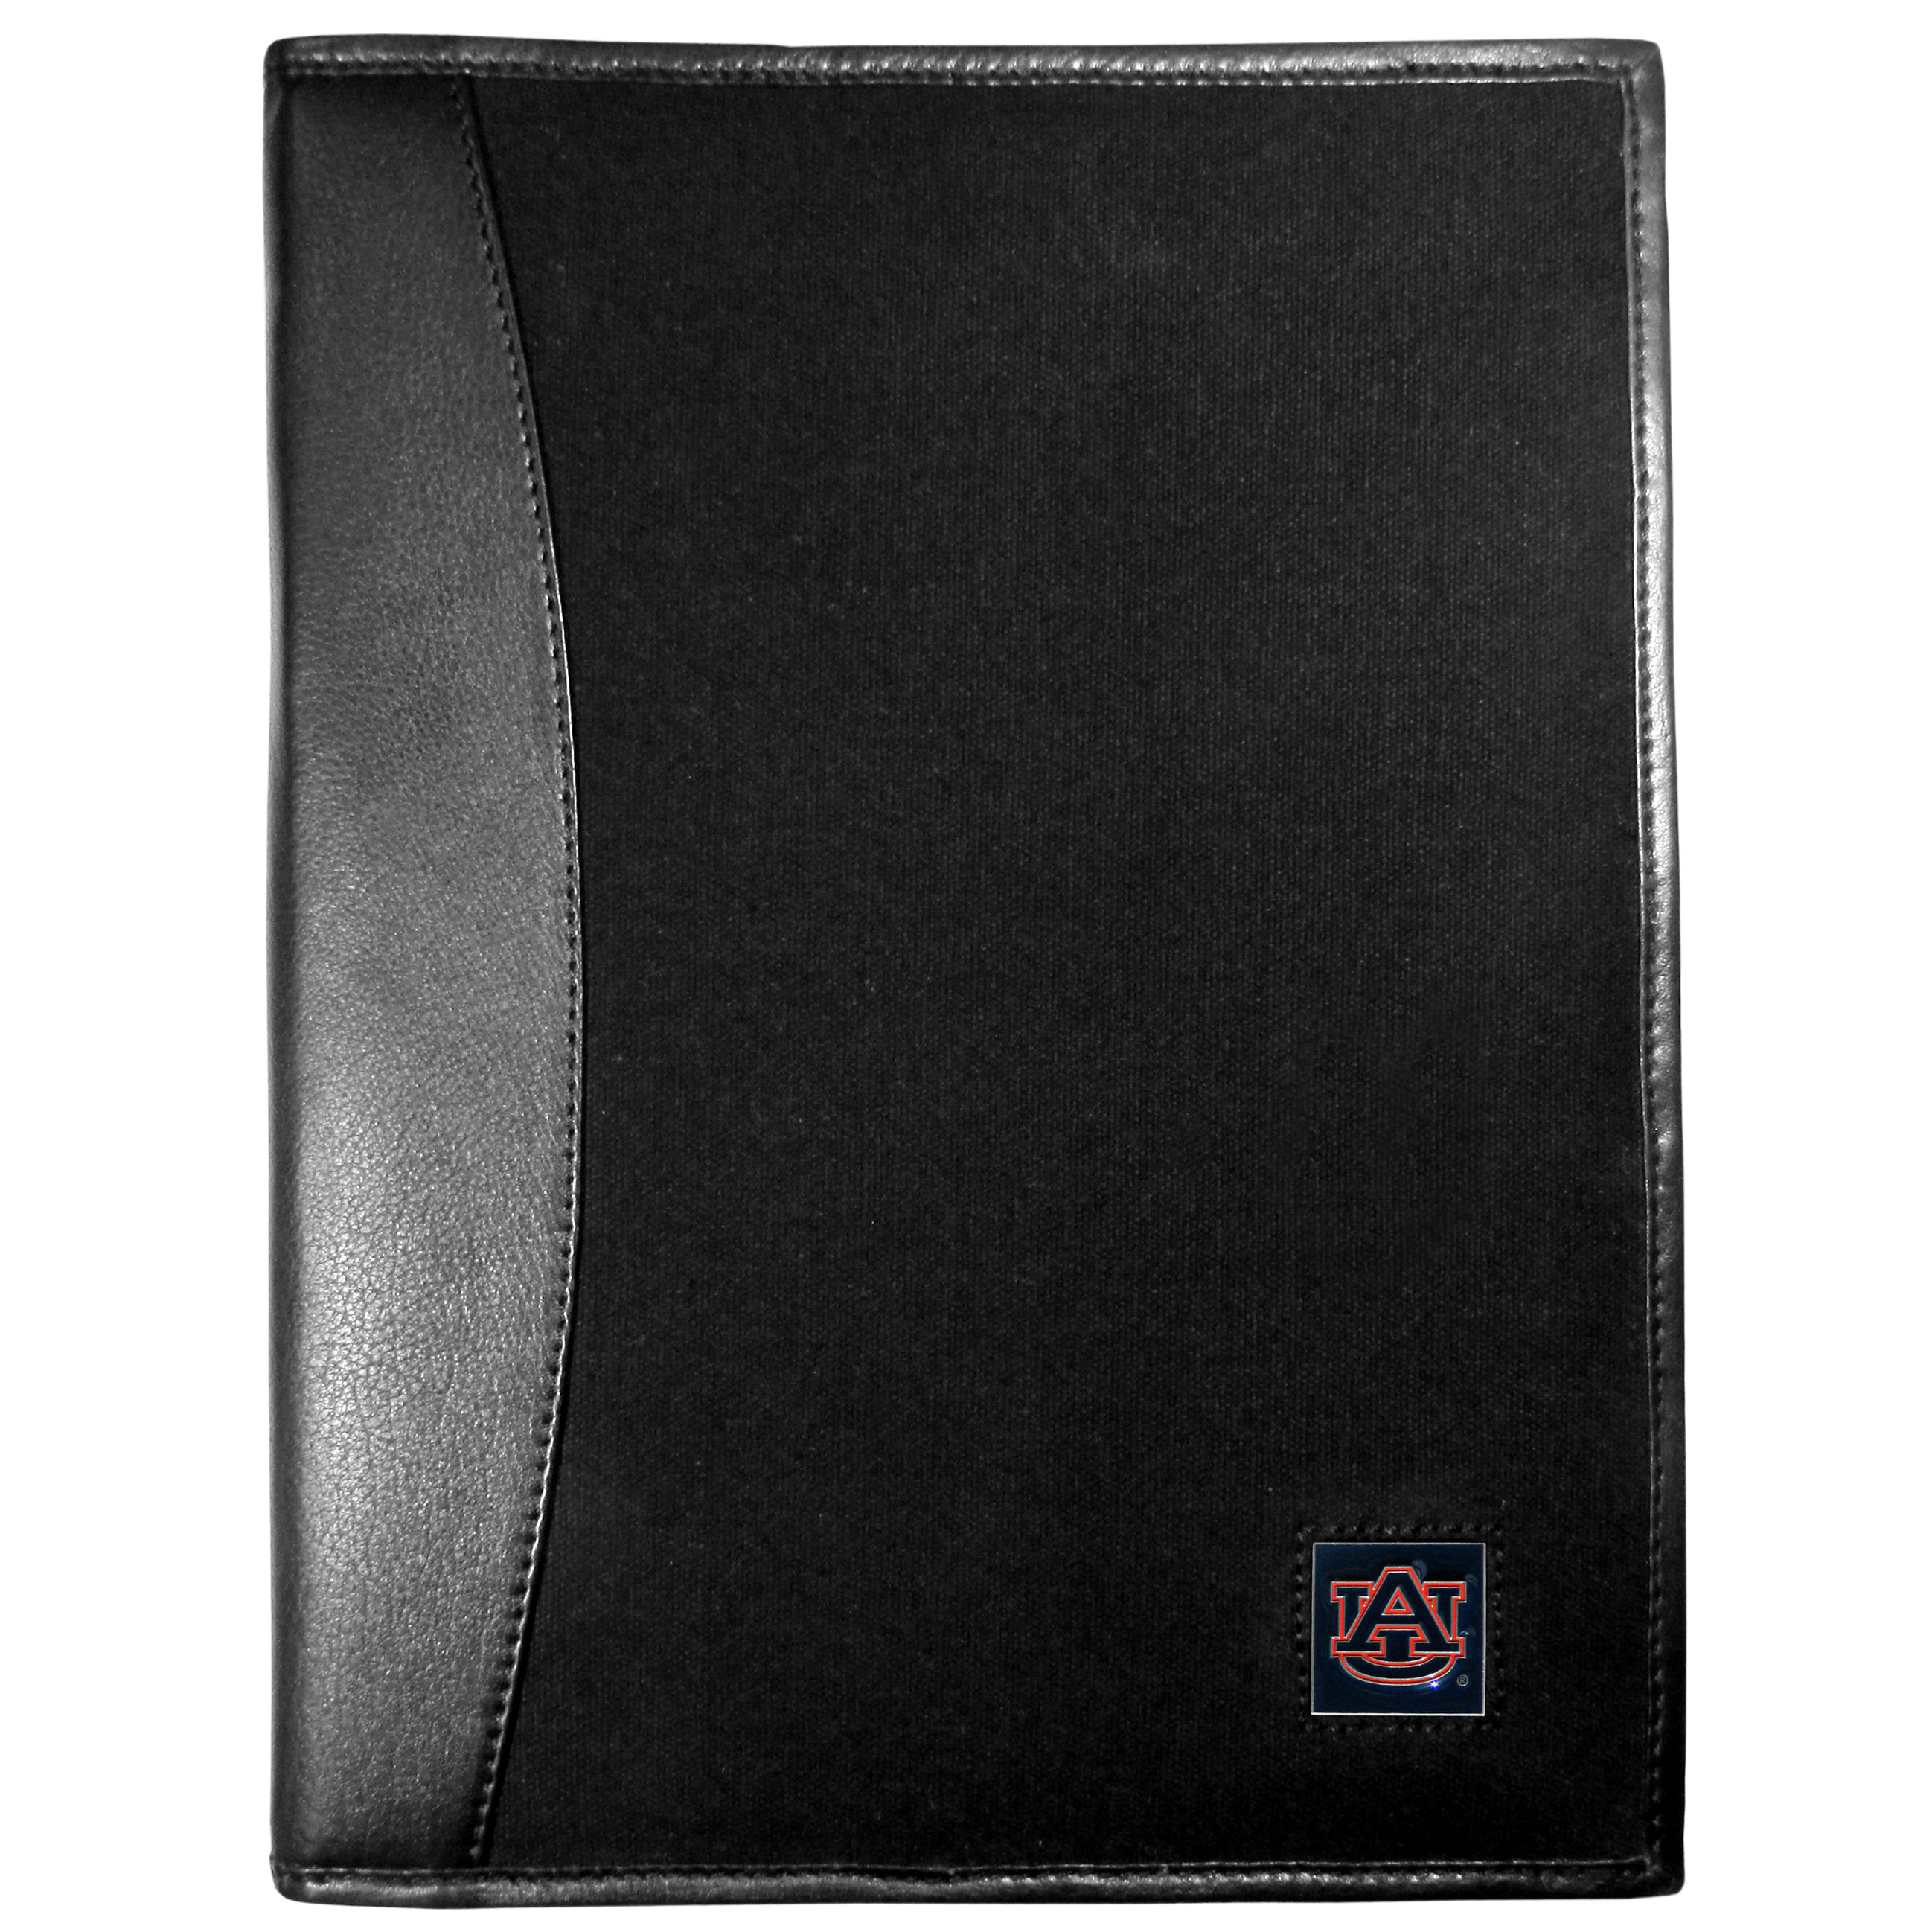 Auburn Tigers Leather and Canvas Padfolio - Our leather and canvas padfolio perfectly blends form and function. The attractive portfolio is bound in fine grain leather with an attractive canvas finish and the interior is a soft nylon. This high quality business accessory also features a fully cast metal Auburn Tigers emblem that is subtly set in the corner of the organizer. It is packed with features like 6 card slots for badges, business cards, hotel keys or credit cards and ID with a large pocket for loose papers and a writing tablet slot making it a must-have for the professional on the go.